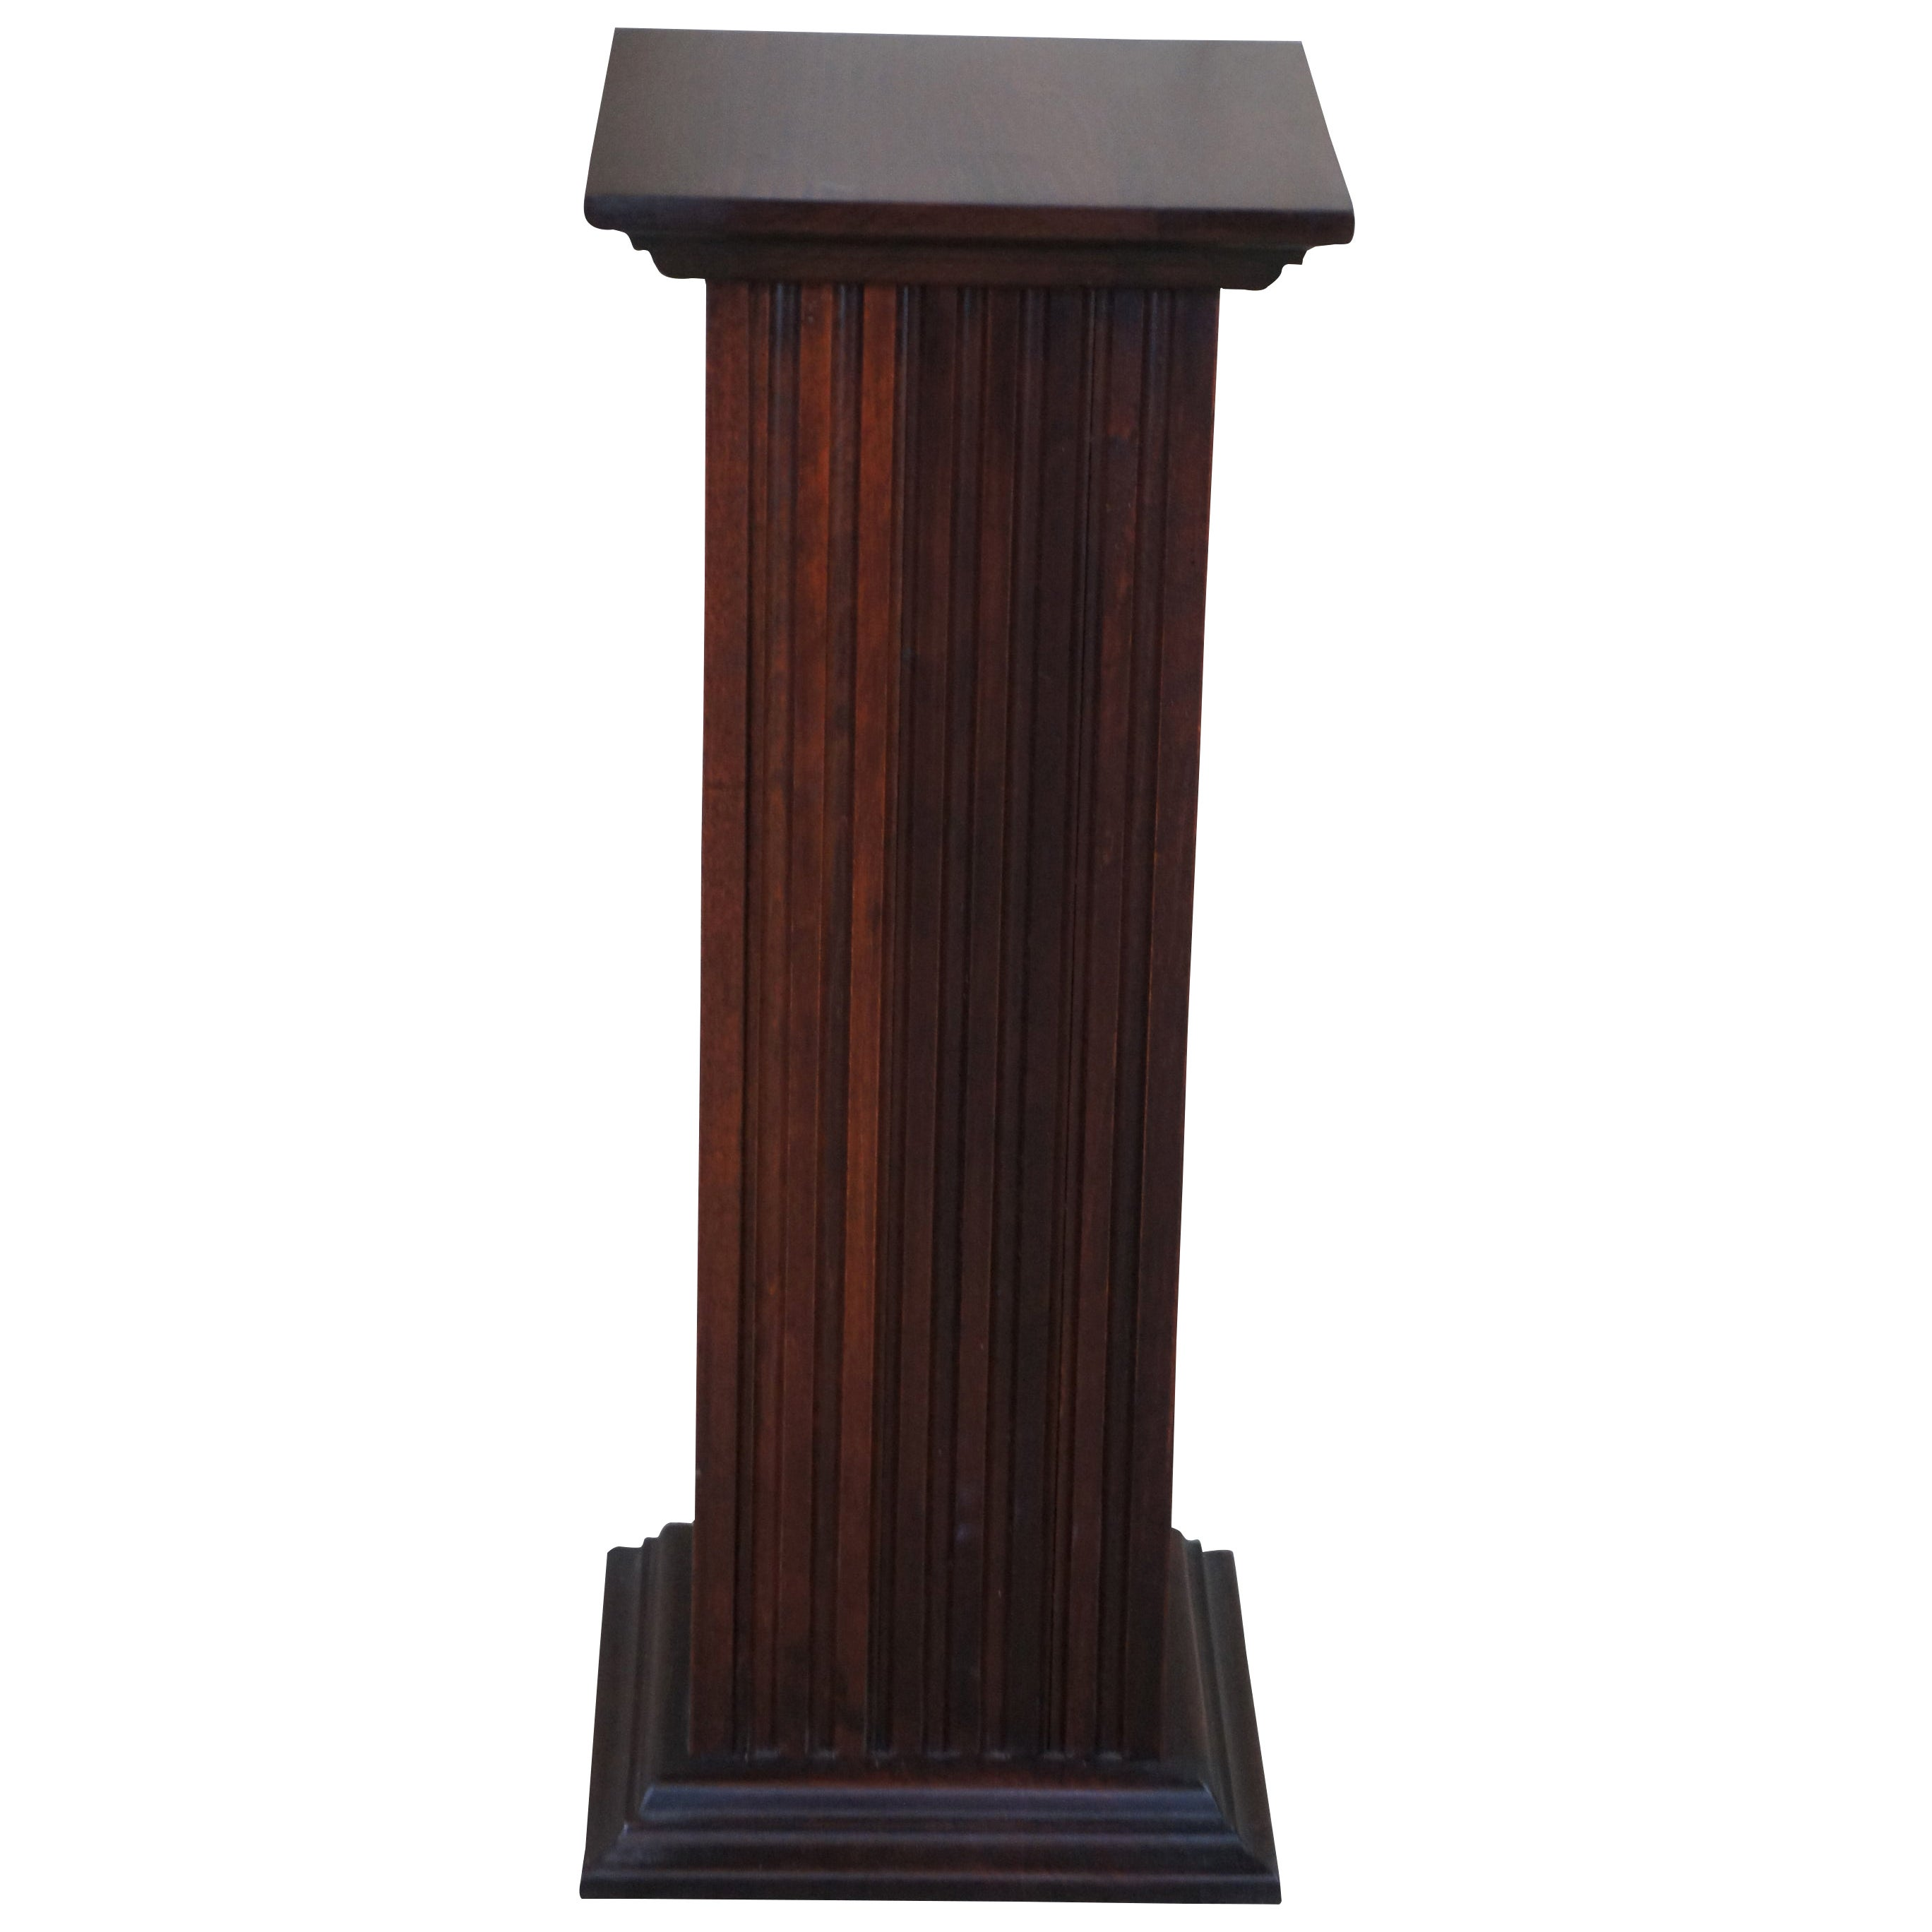 Traditional Mahogany Finished Square Column Pedestal Plant Stand Display